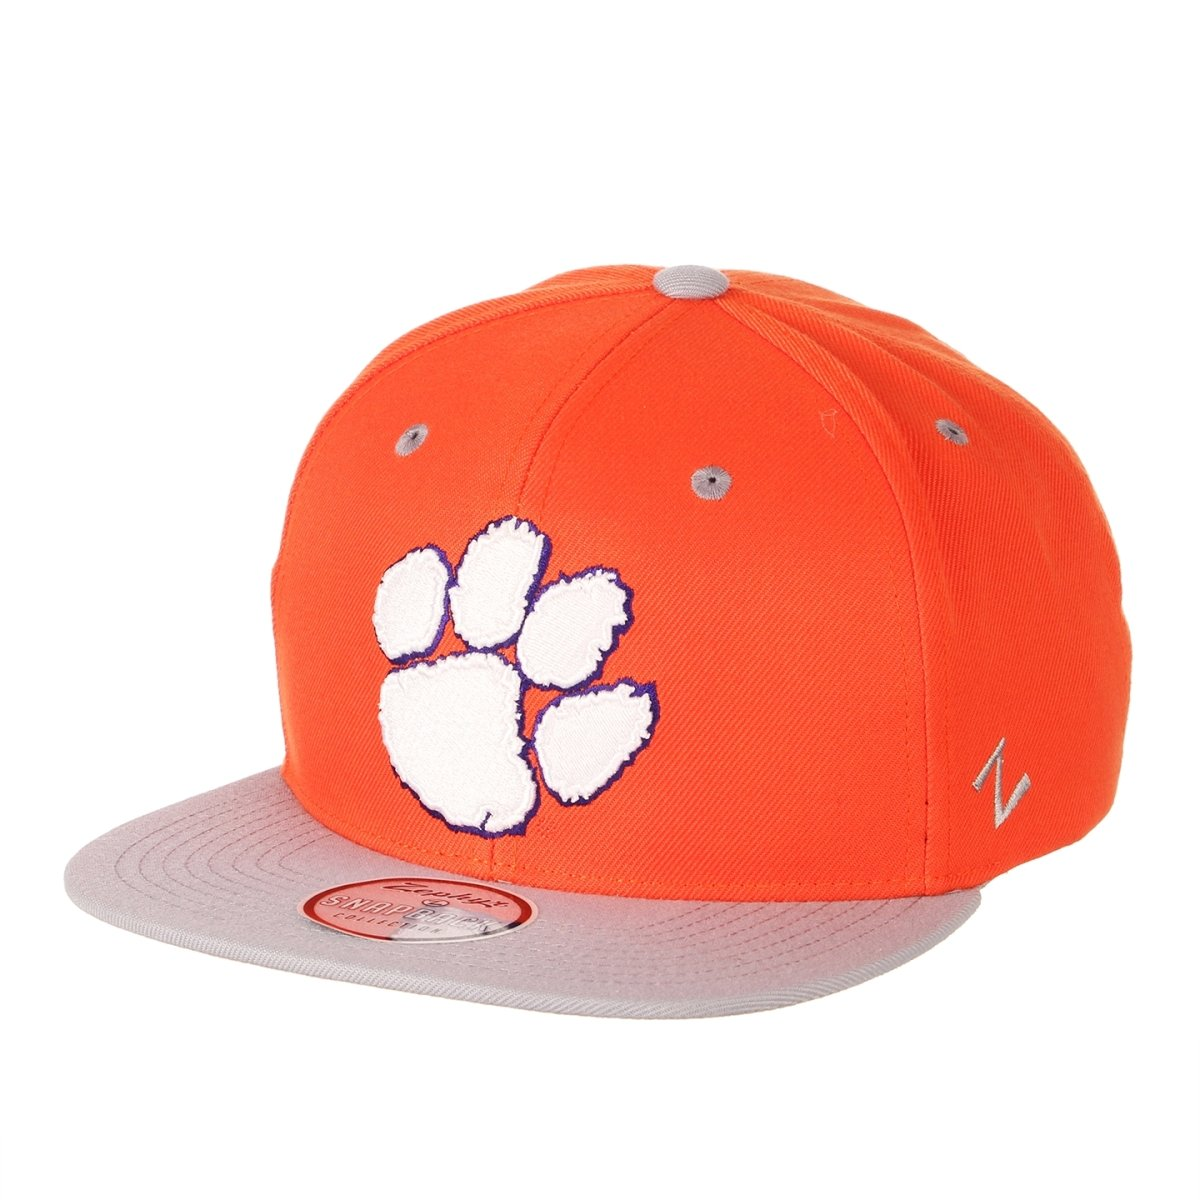 Clemson Tigers Orange Snapback Hat With Smoke Gray Bill - Mr. Knickerbocker